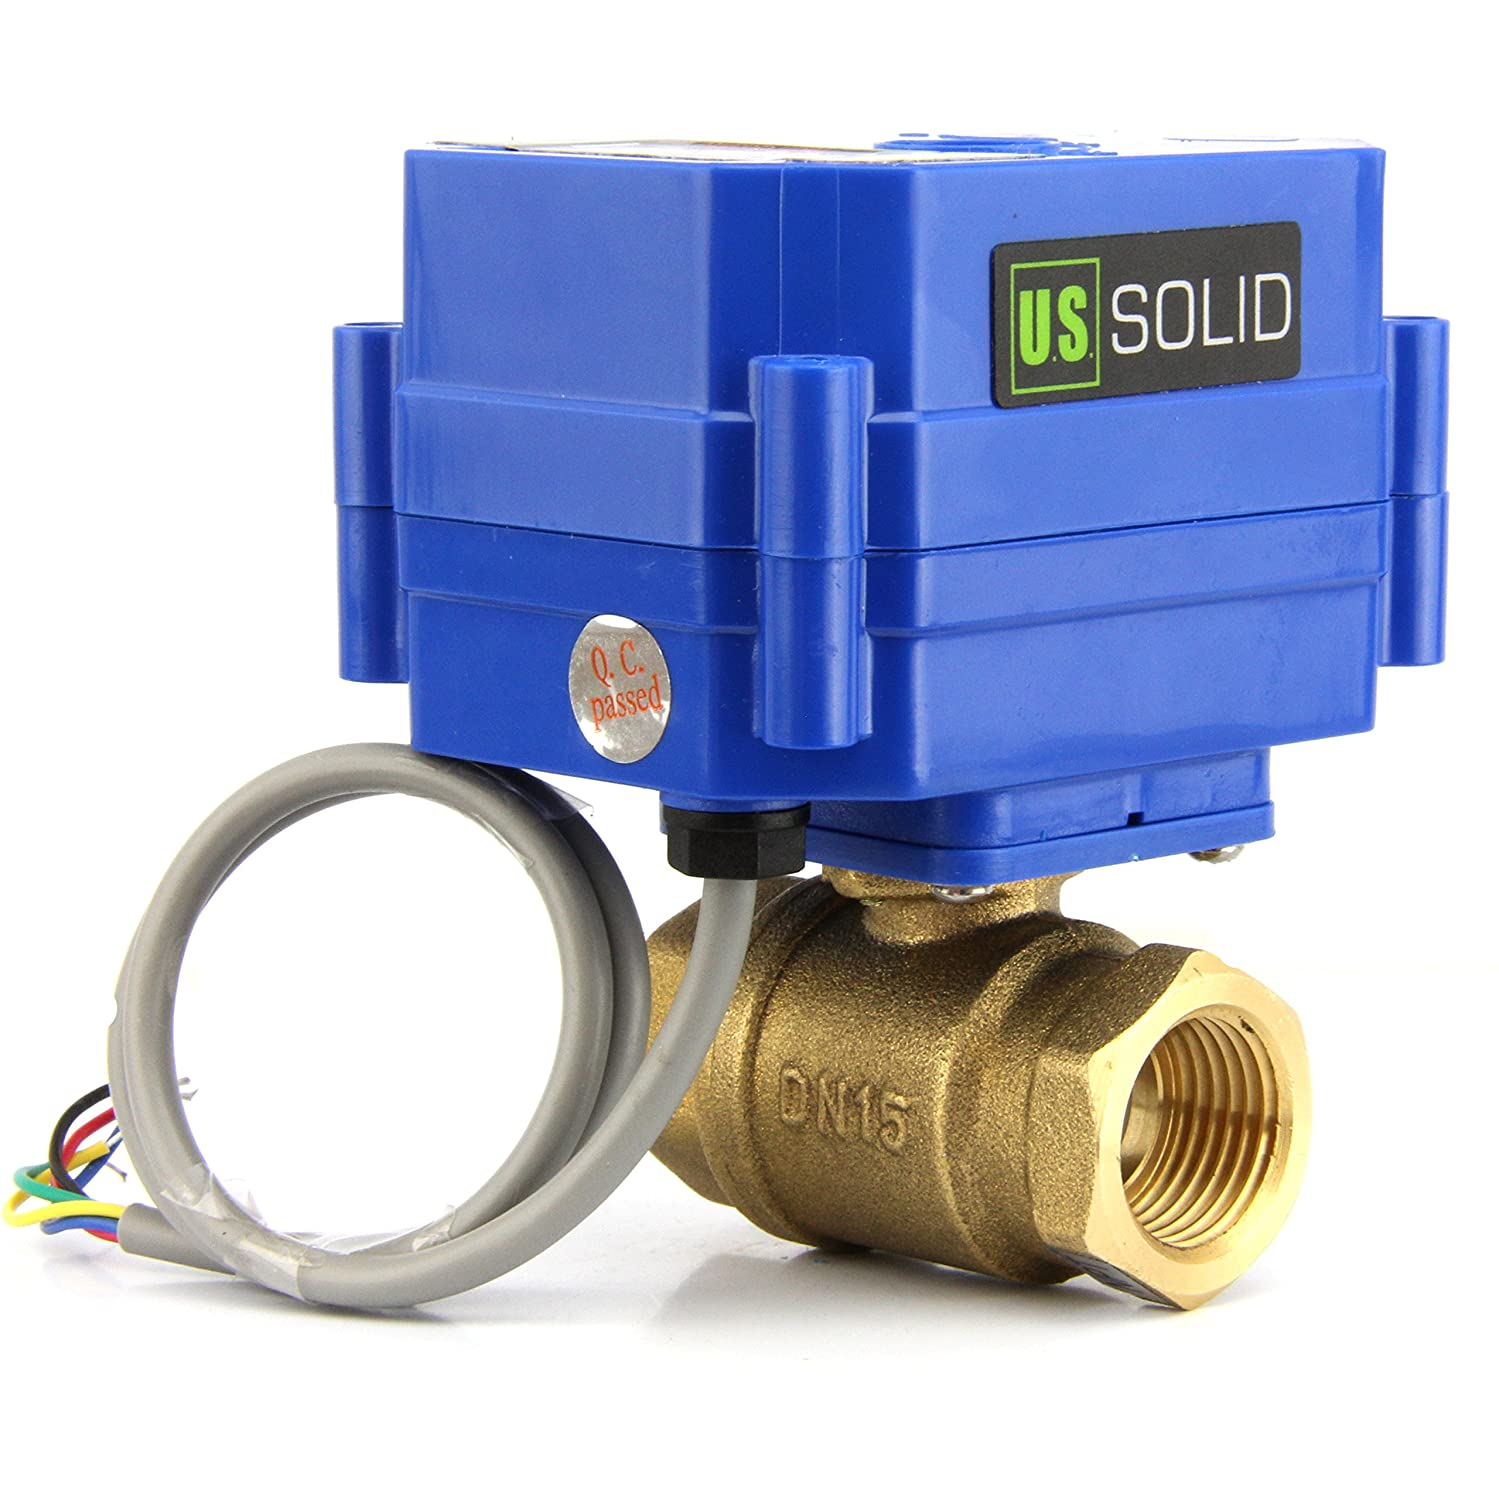 """9-24V DC and 5 Wire Setup Solid by U.S Indicate Open or Closed Position can be used with Indicator Lights, Motorized Ball Valve- 1/"""" Brass Electrical Ball Valve with Standard"""